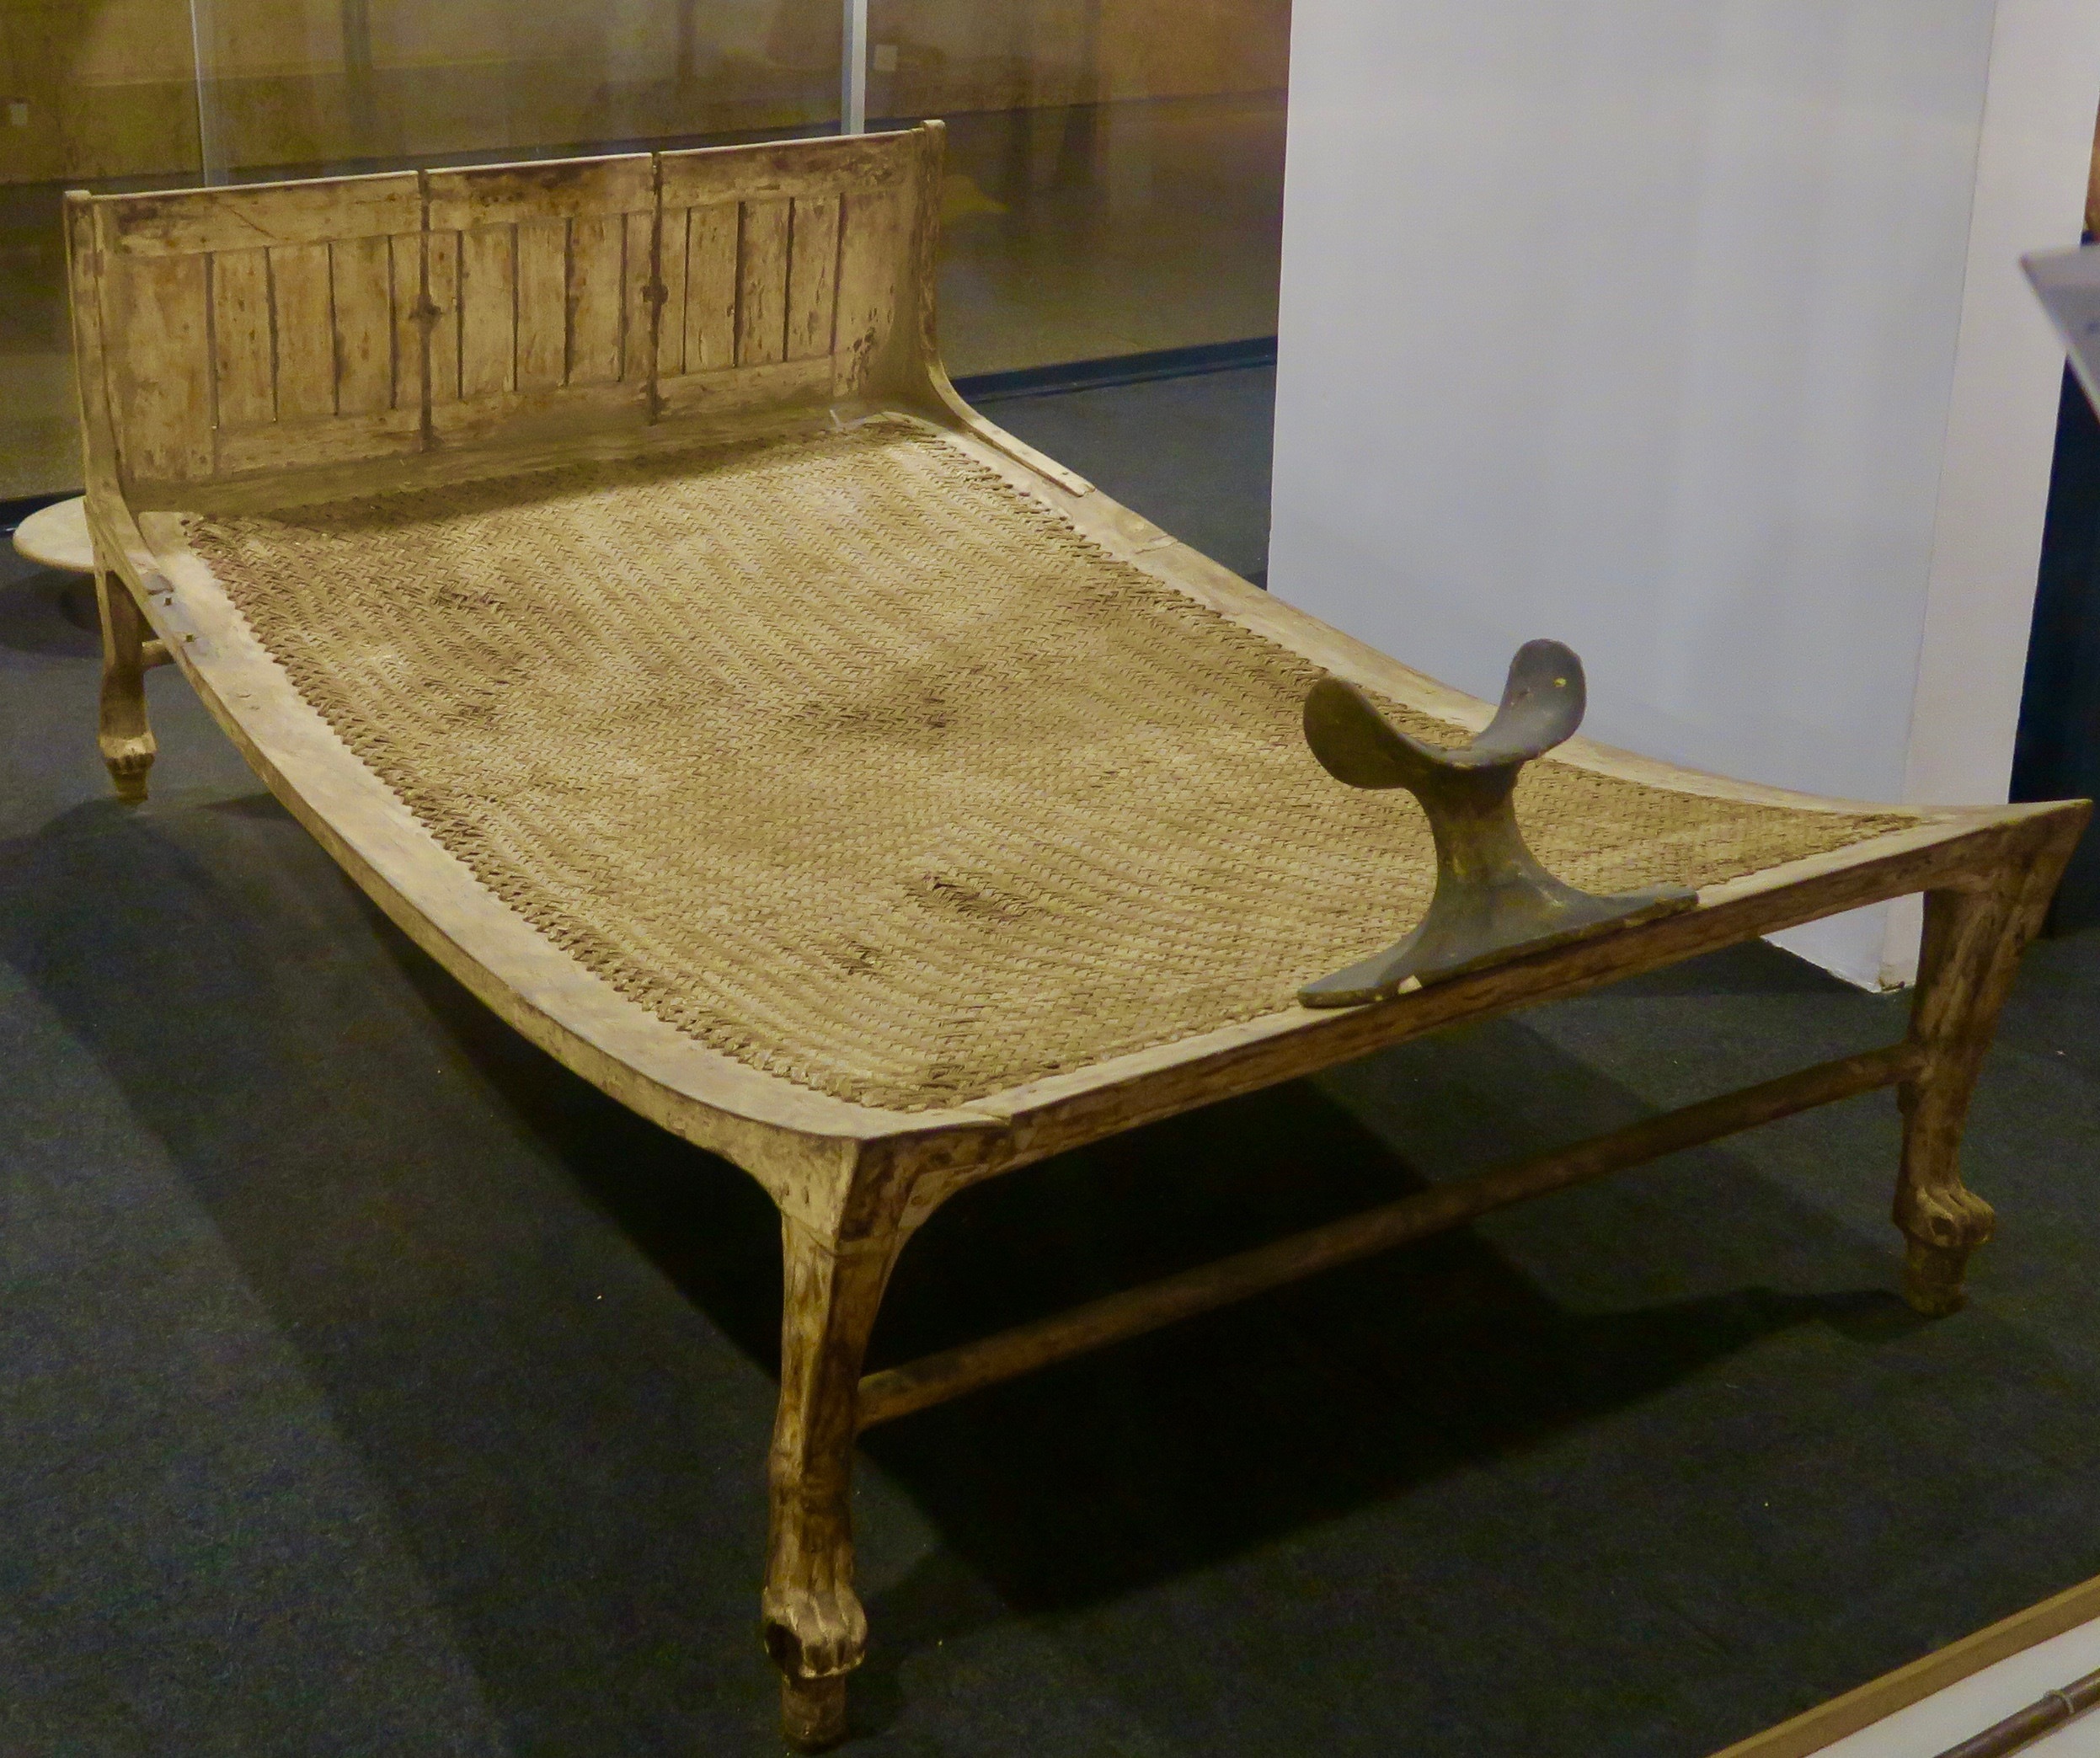 Bed from Tomb of King Tut